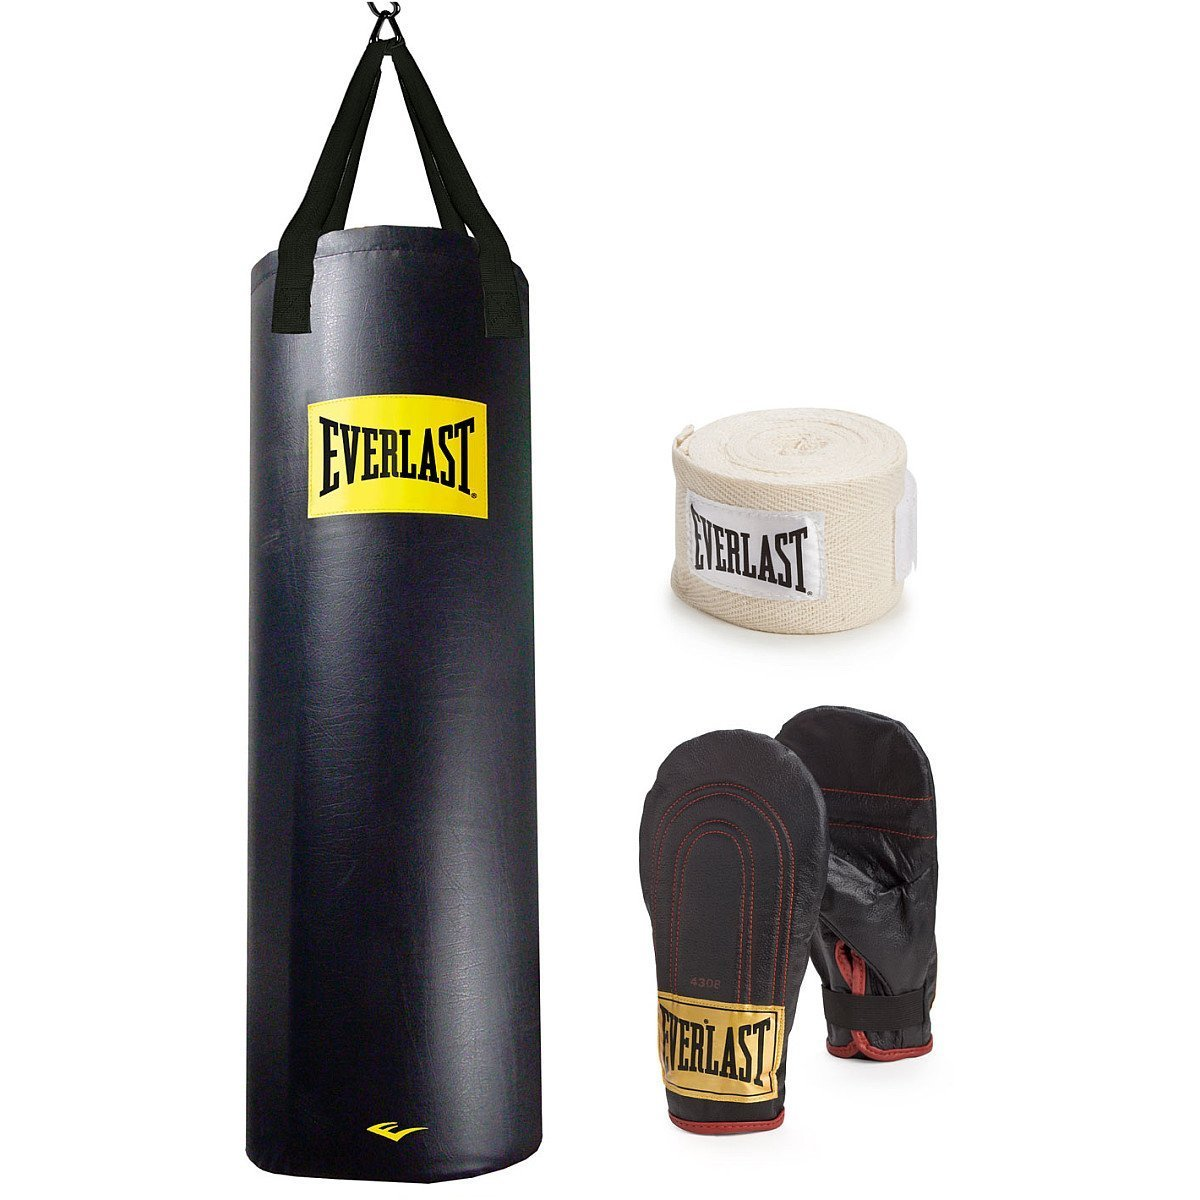 Everlast 100-pound Bag Nevatear Heavy Bag kit 100lb with with kit B00VPSS09Y, しおみの杜:31f3594b --- capela.dominiotemporario.com